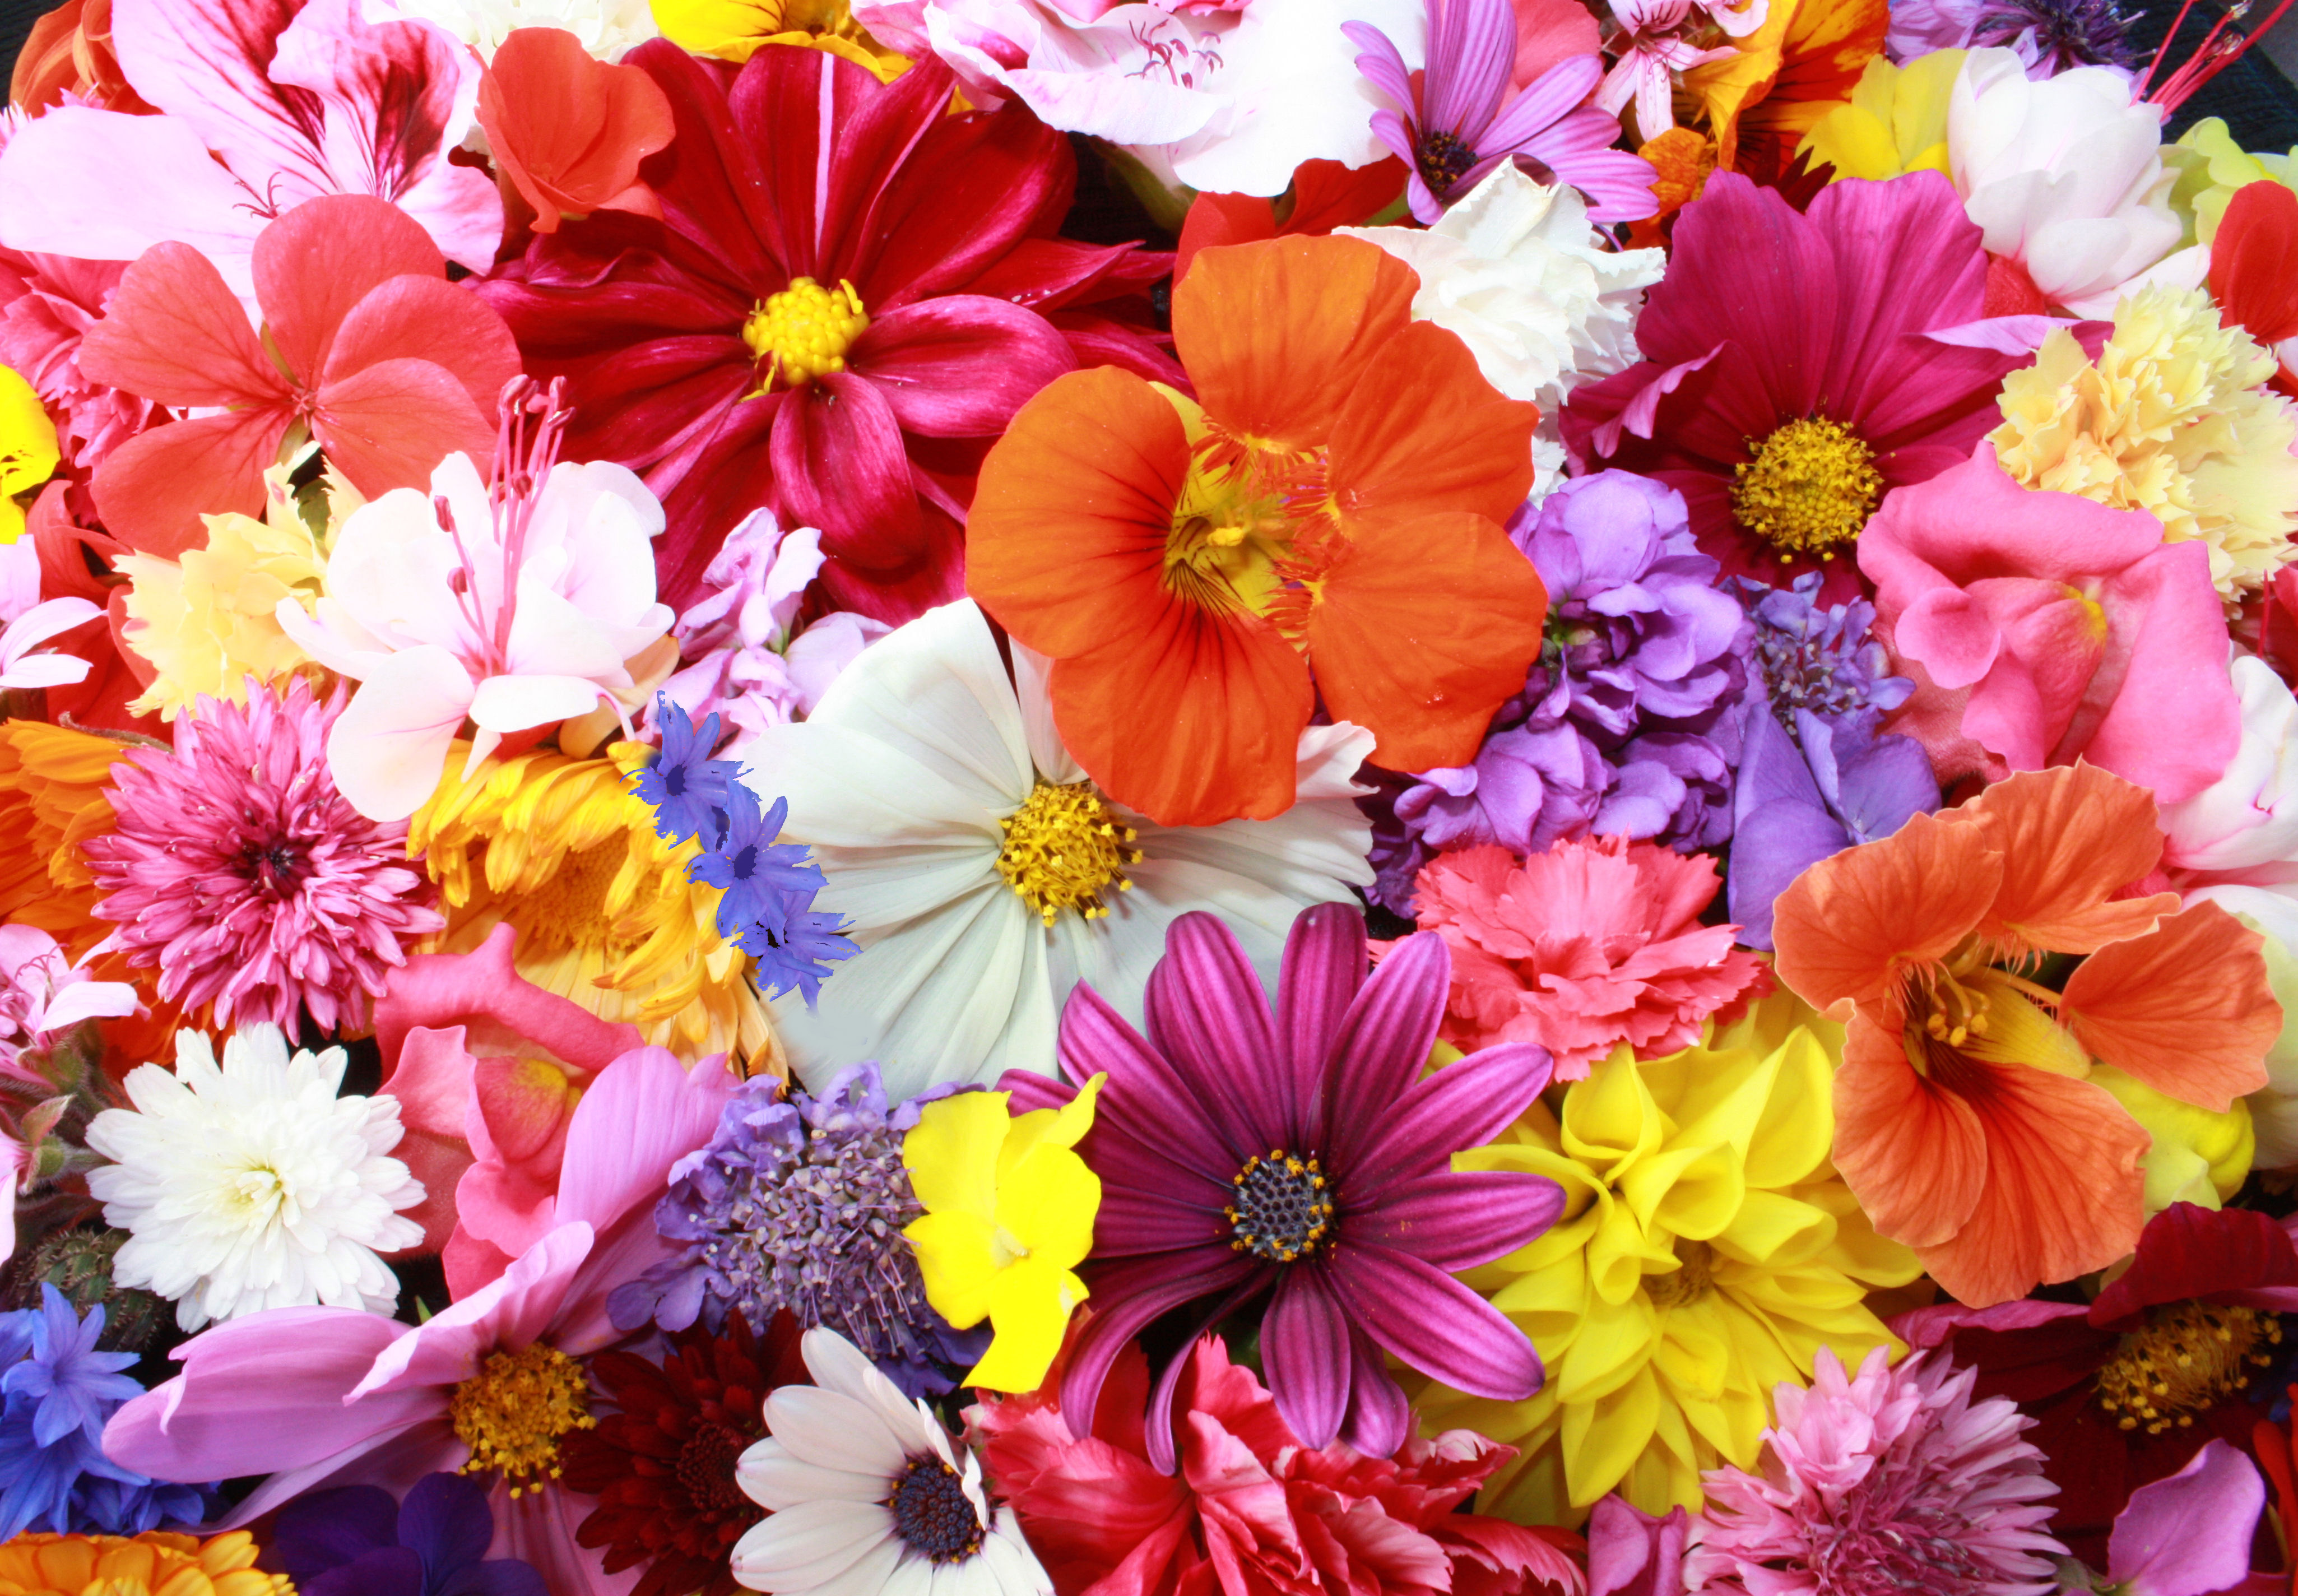 Image for flowers banner free download 17 Best images about Flowers | Mixed Colours on Pinterest | Dating ... banner free download